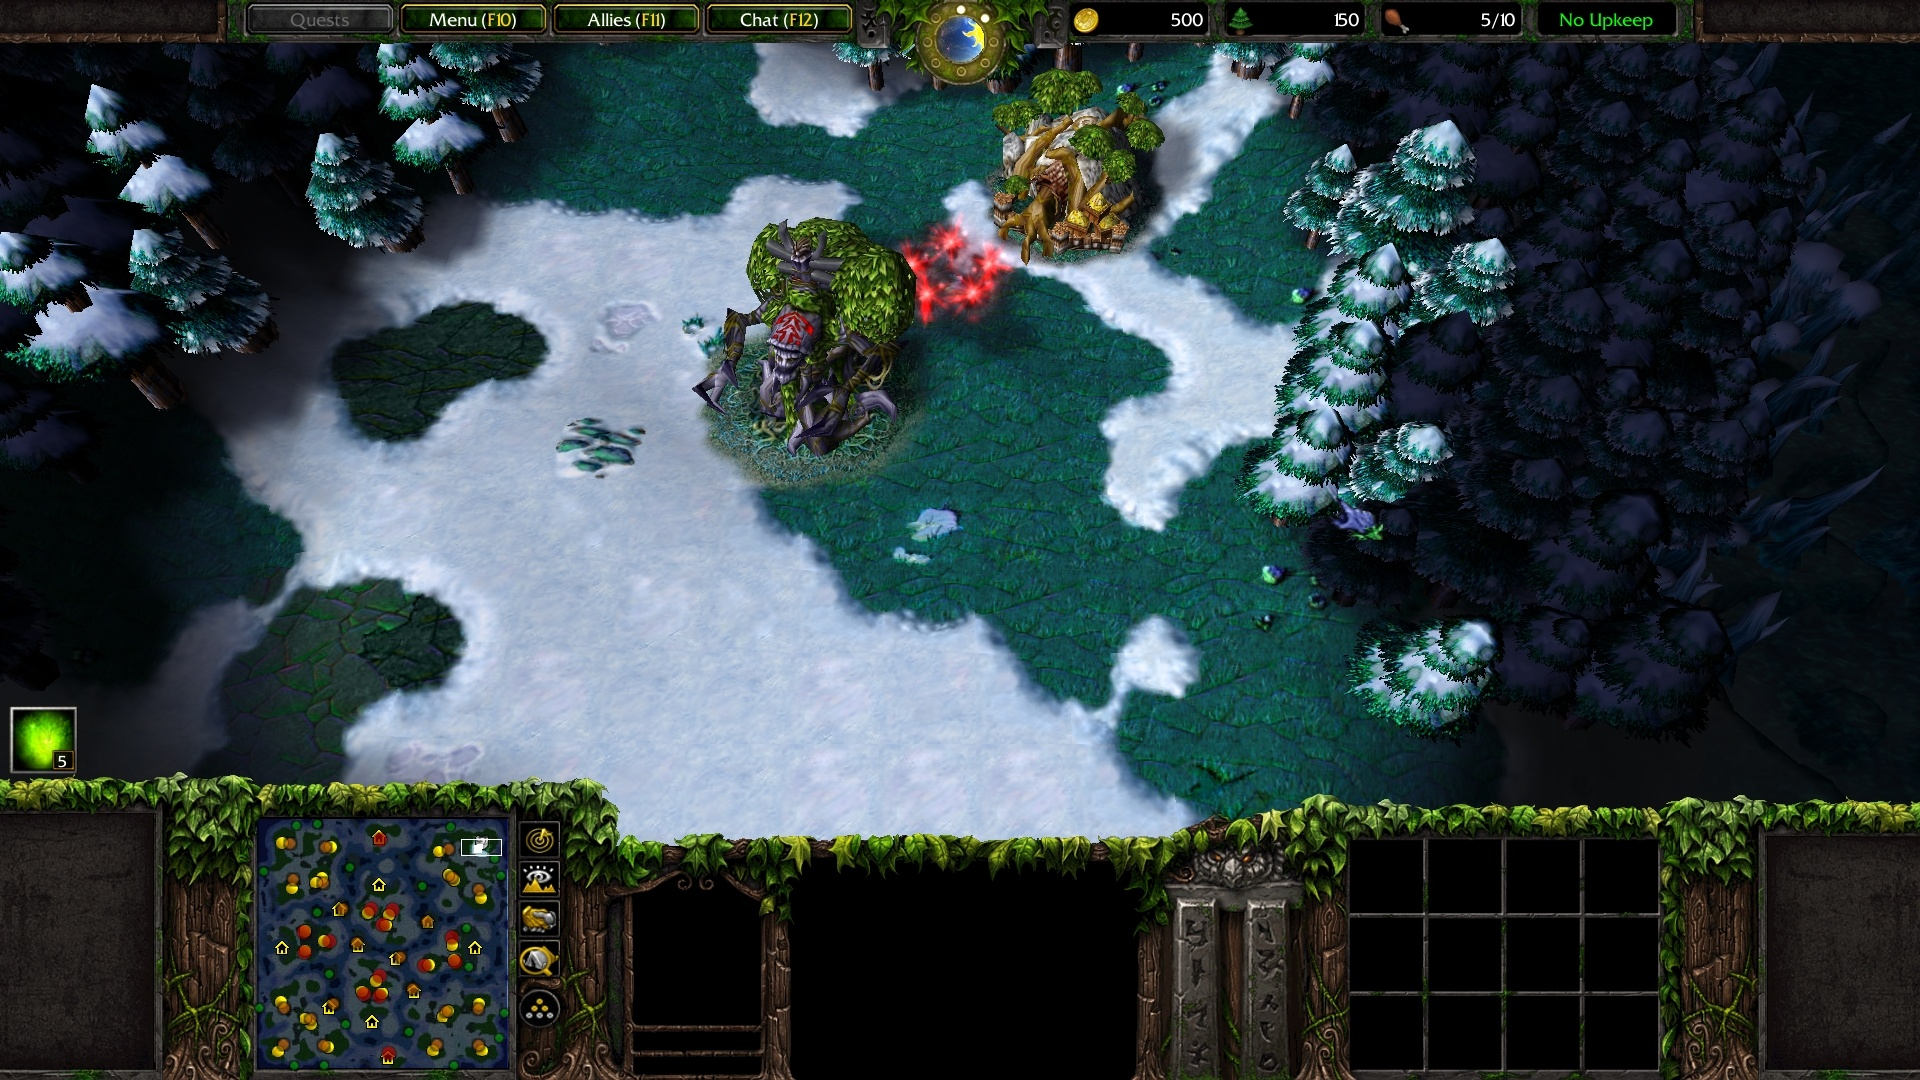 Warcraft iii: the frozen throne game mod warcraft iii mod: nirvana.